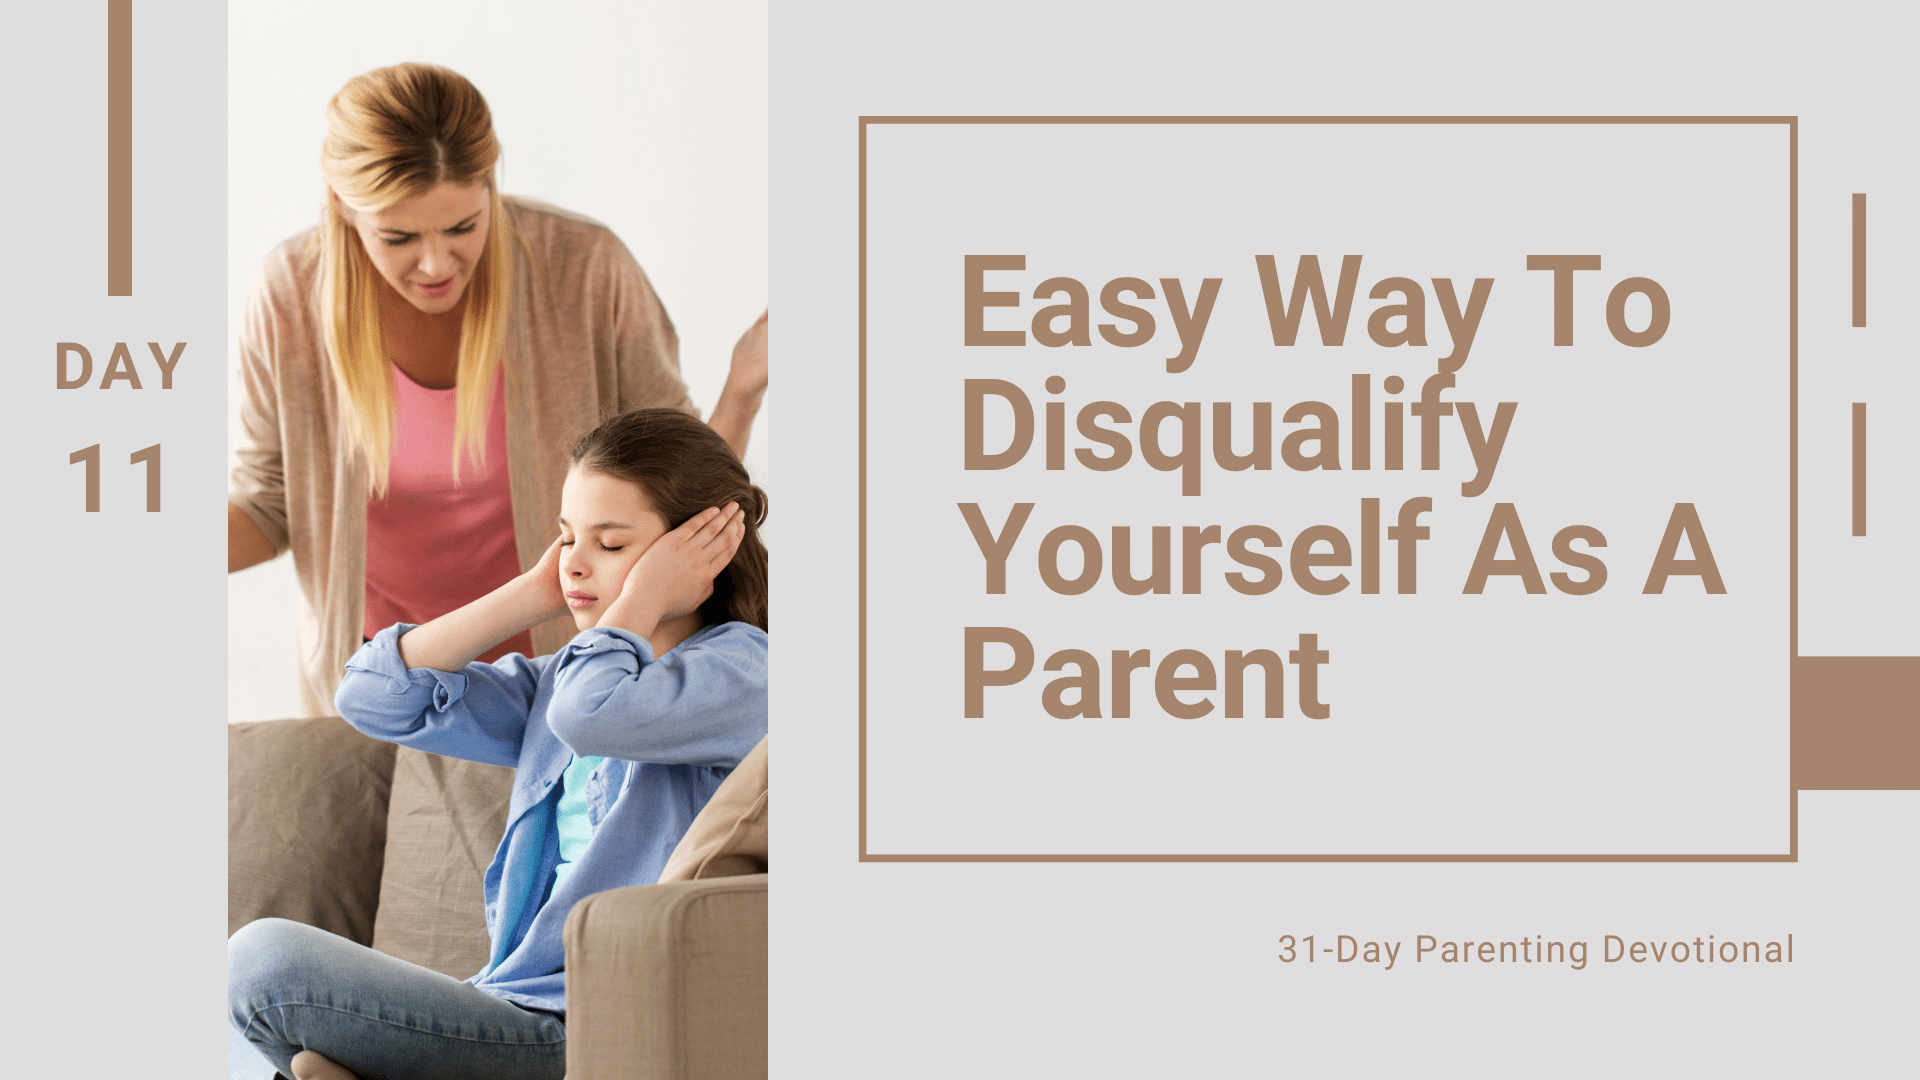 11 Easy Way To Disqualify Yourself As A Parent, Day 11